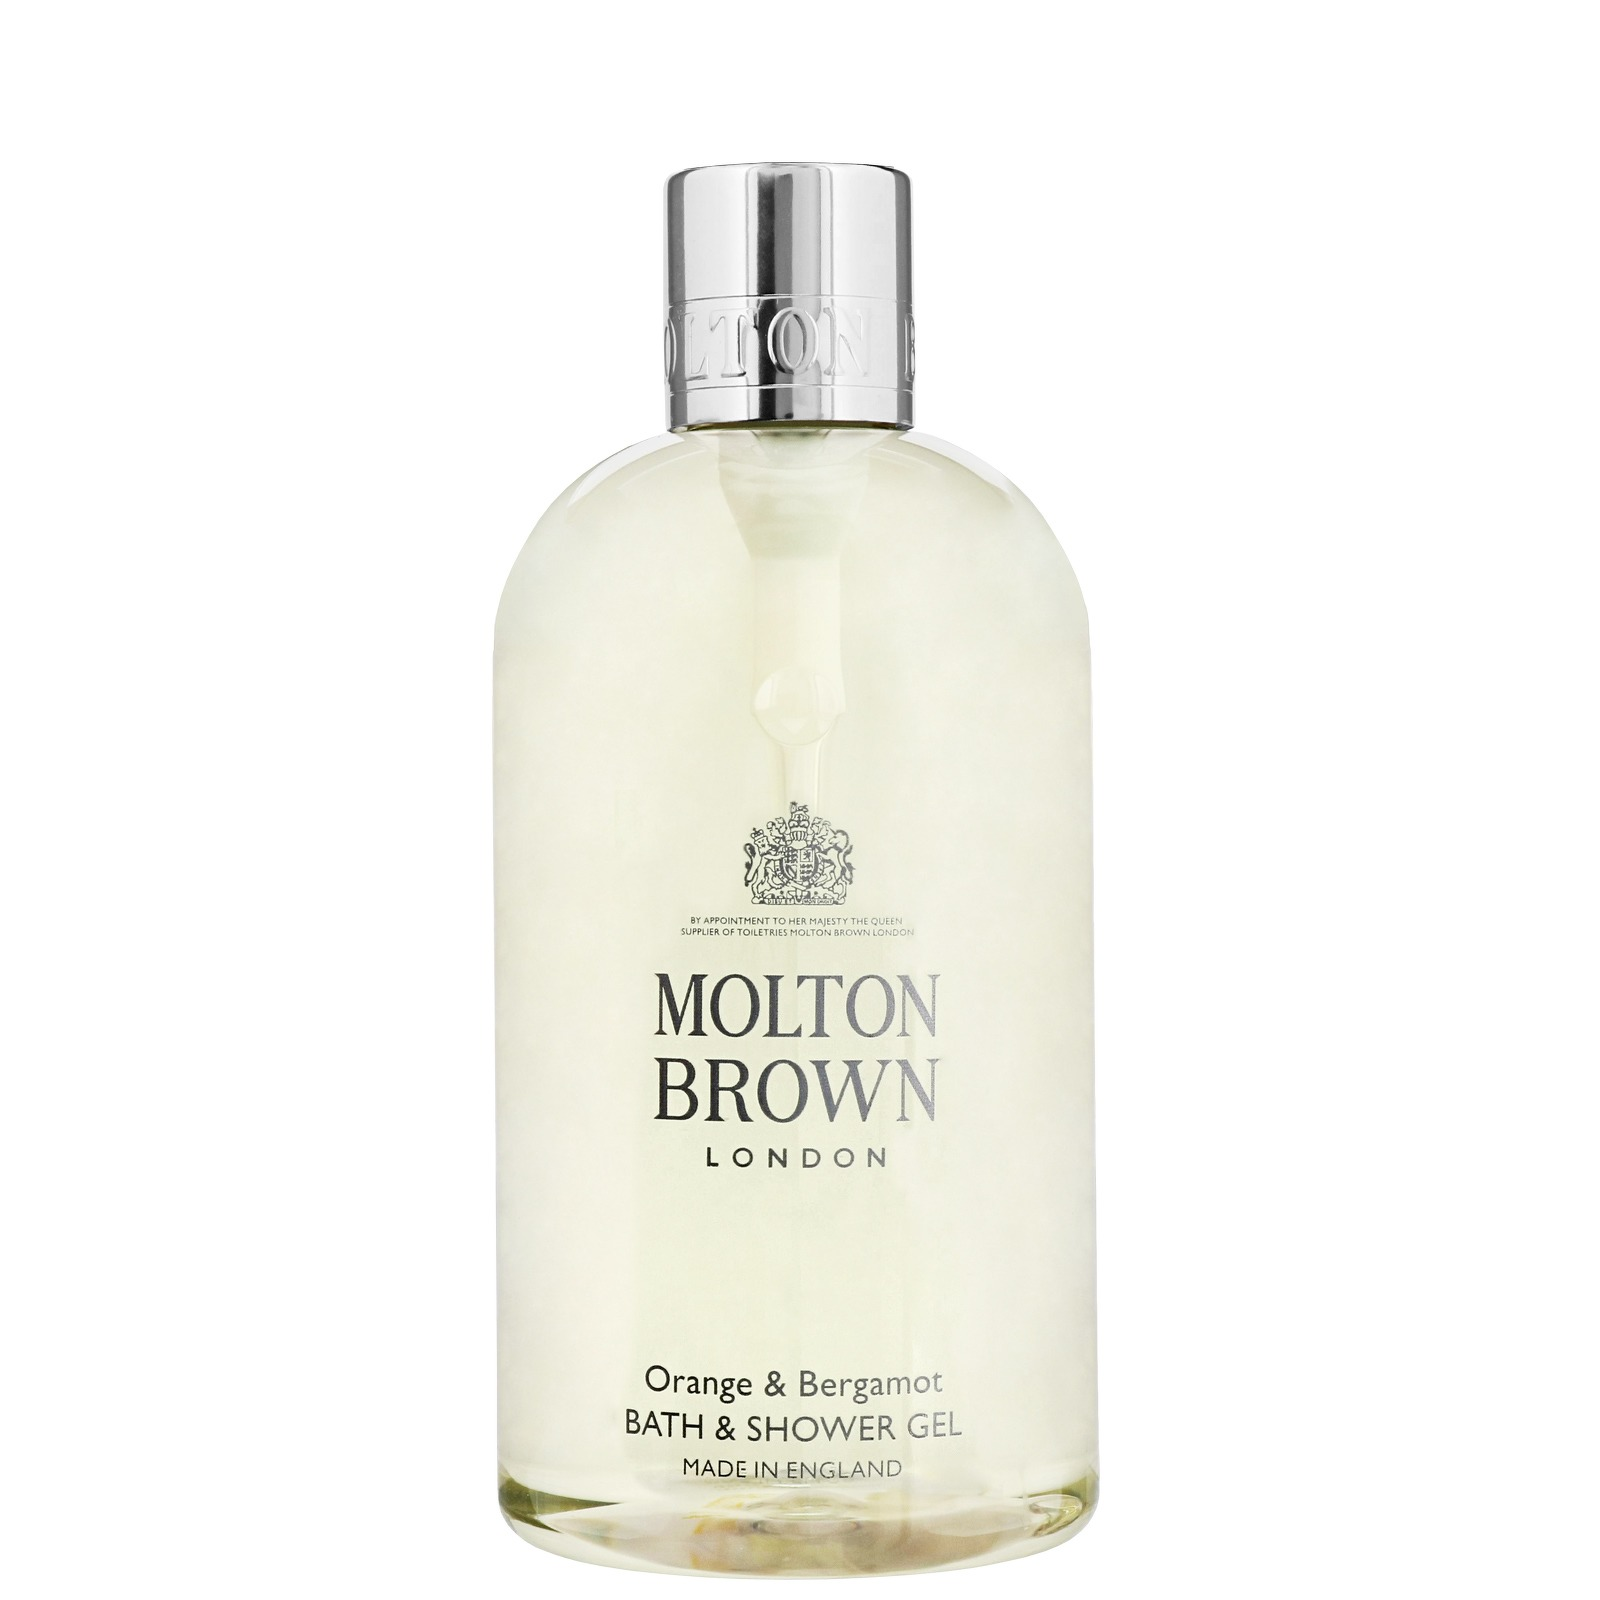 Molton Brown Orange & Bergamot Bath & Shower Gel 300ml